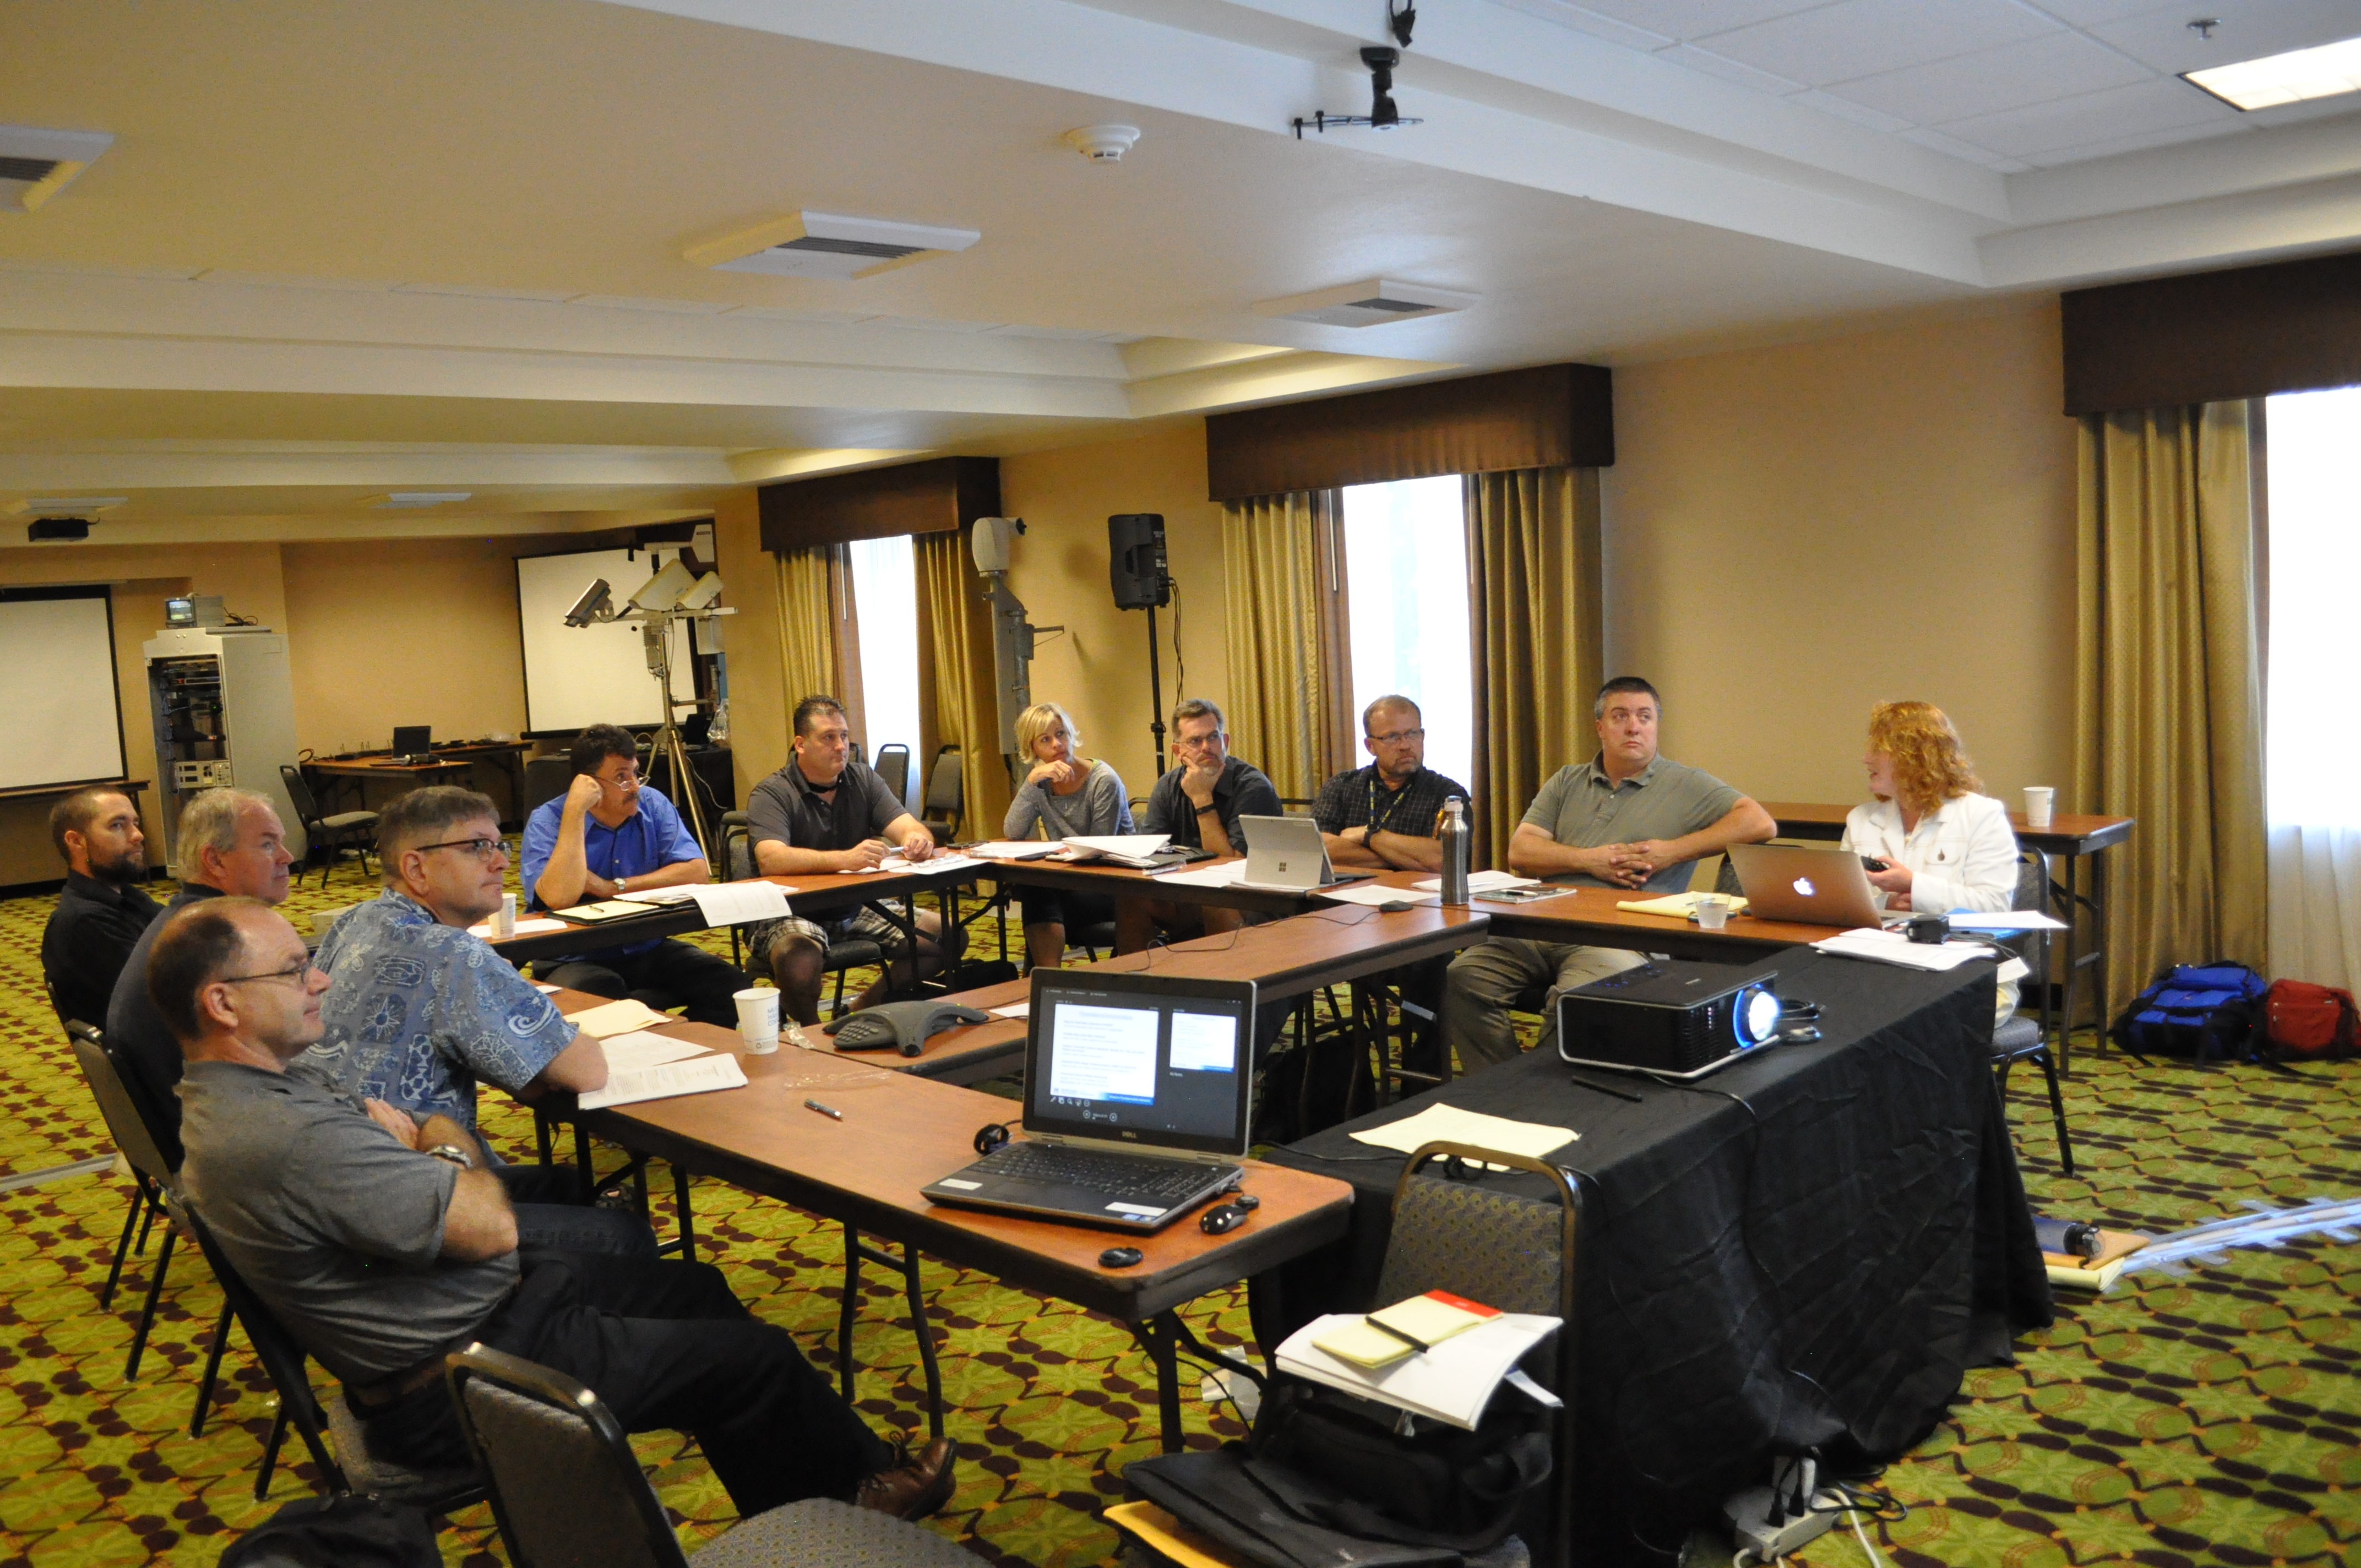 The Western States Rural Transportation Consortium Steering Committee's (WSRTC) annual meeting on June 21st, 2016, in Yreka, California.